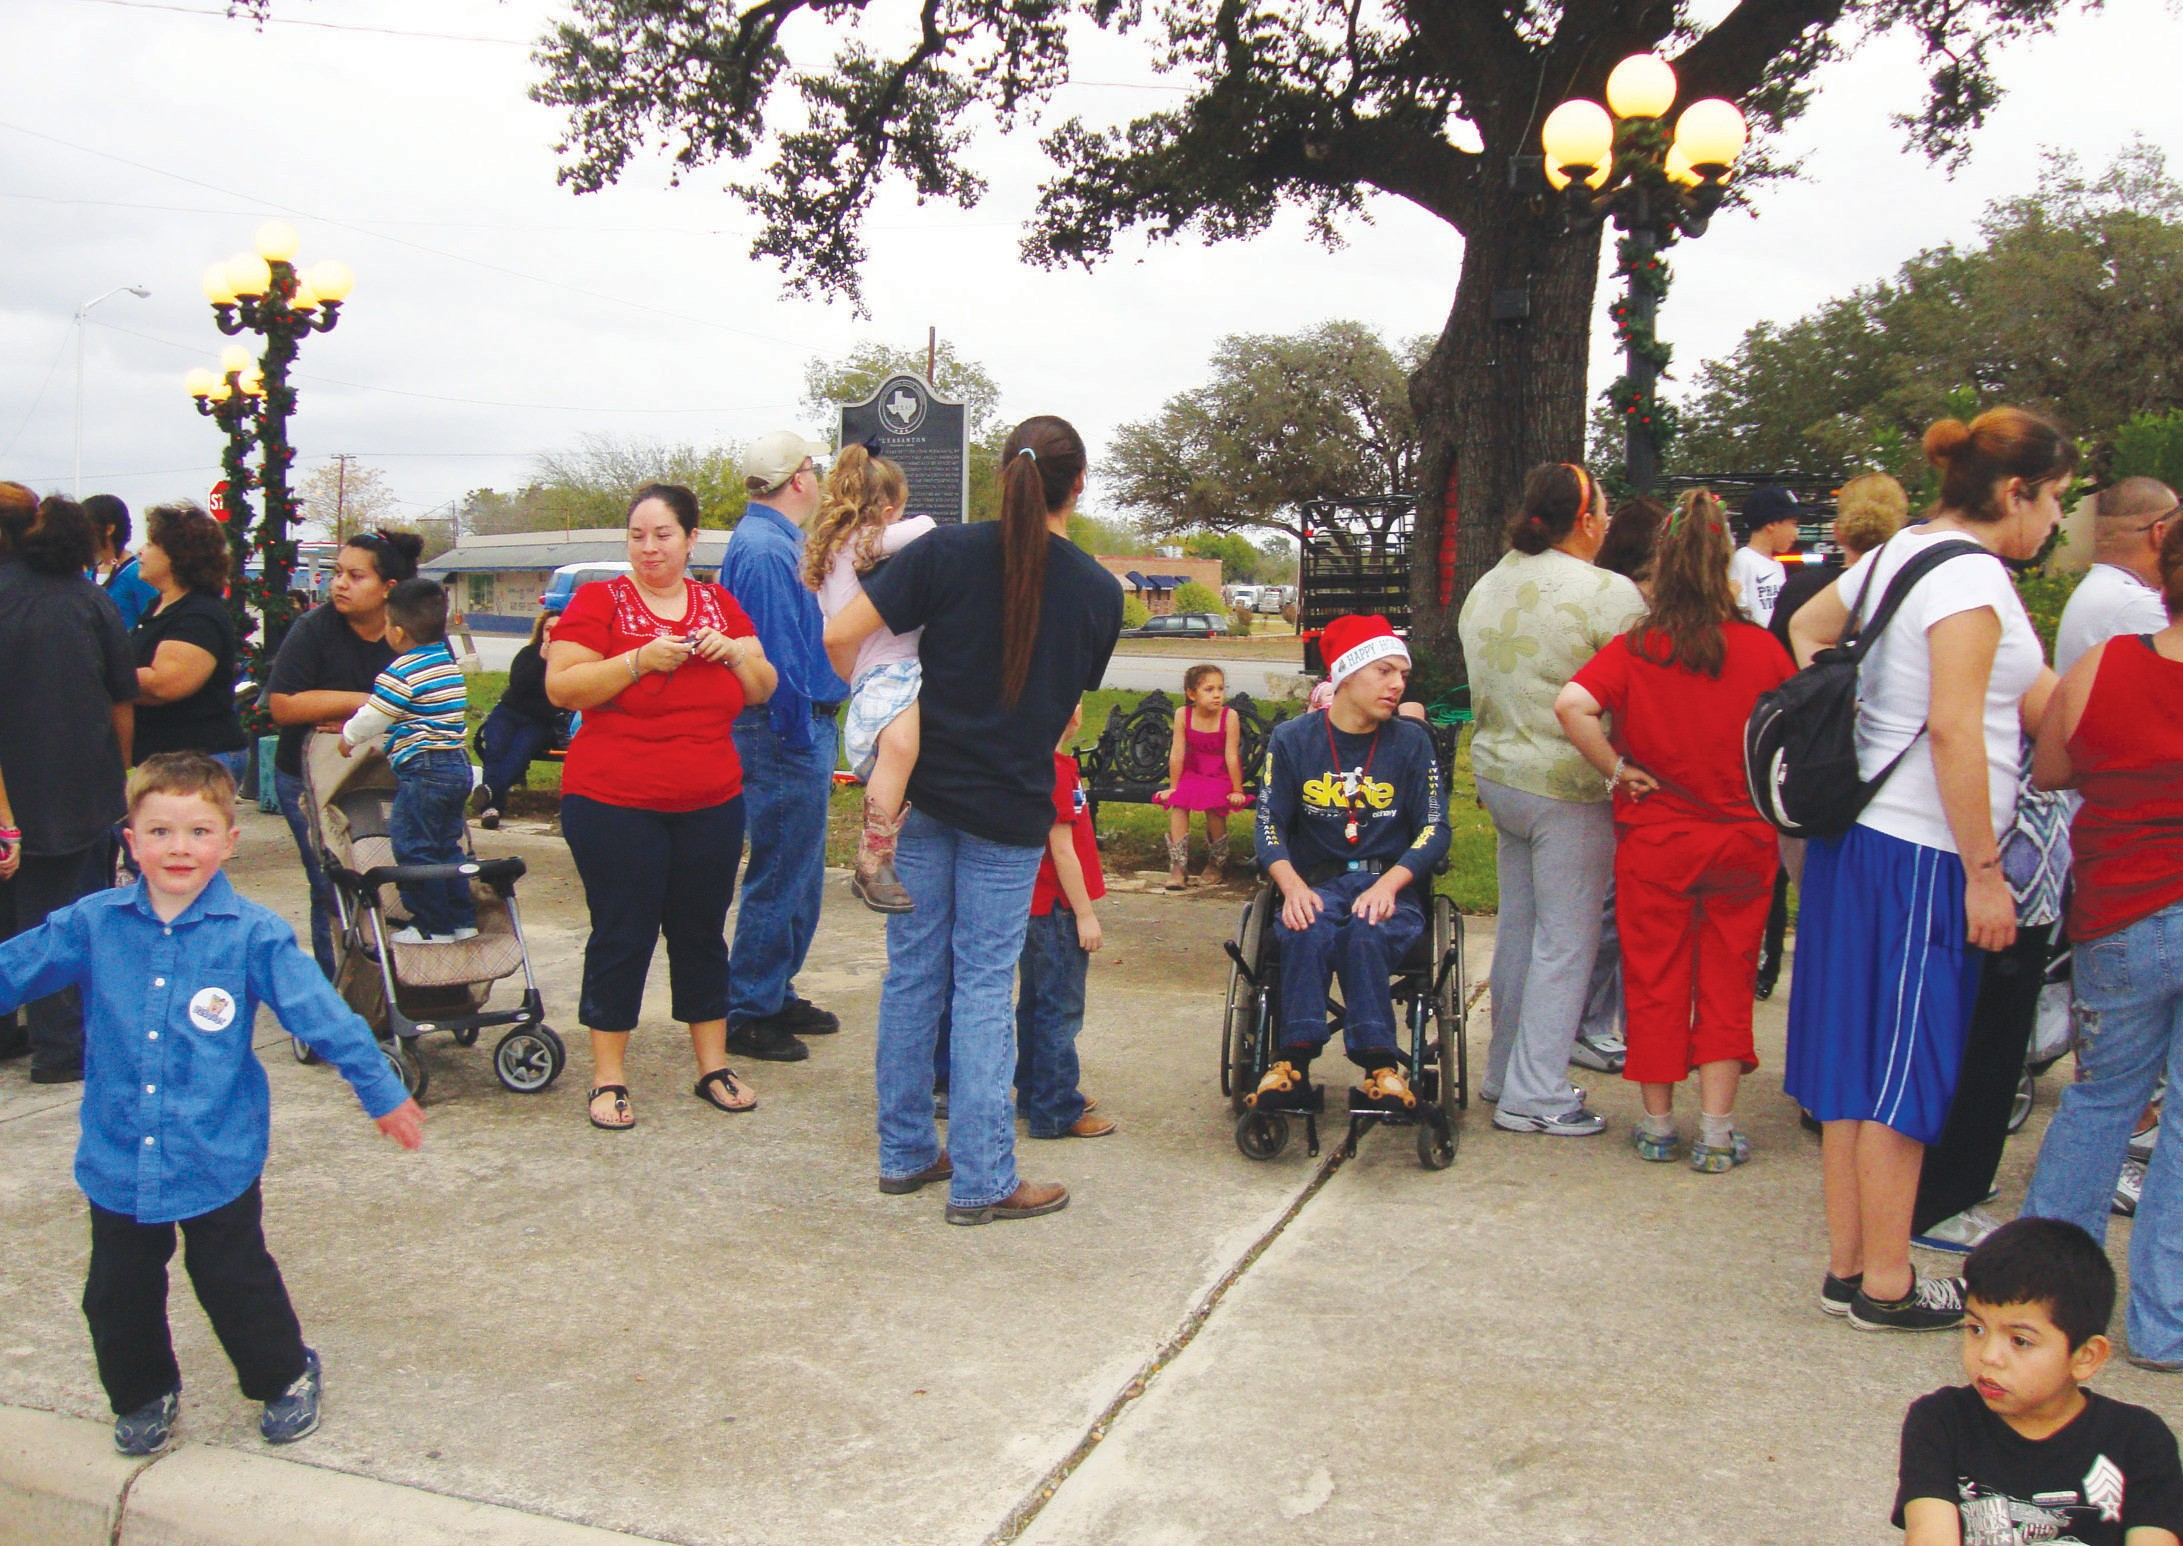 Children lined up for their visit with Santa Claus at last year's Brush Country Christmas in downtown Pleasanton. The event will be held this Saturday, December 1 starting at 3:30.